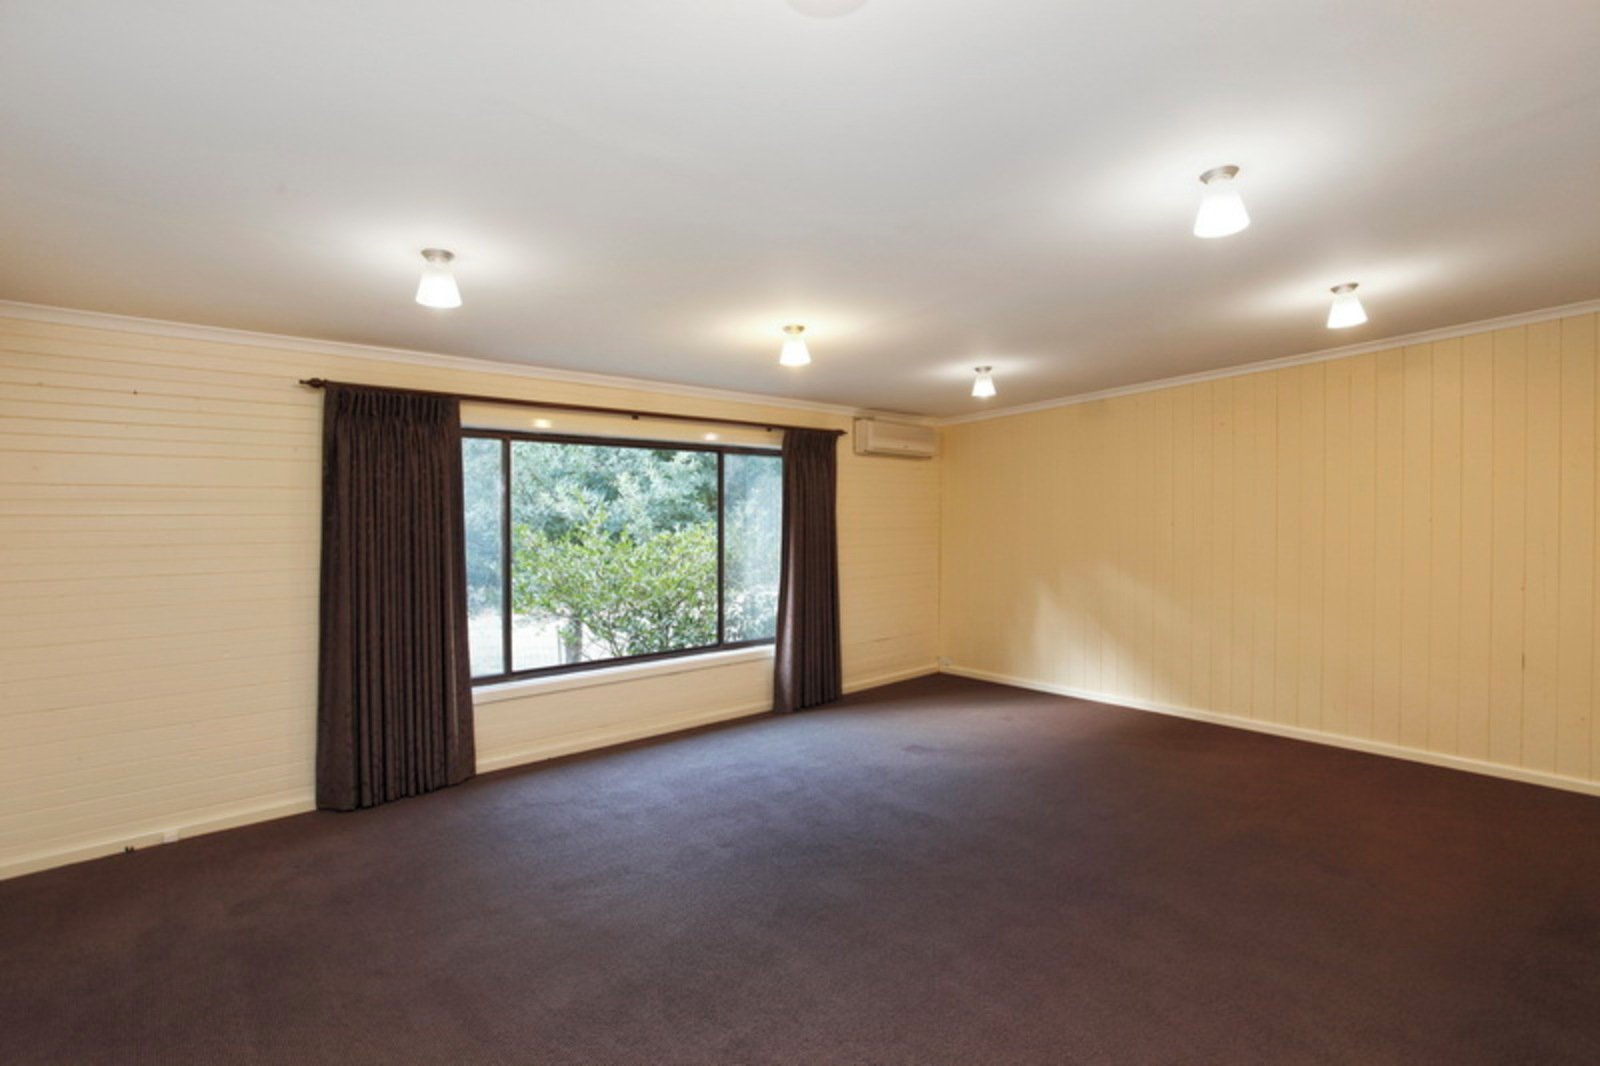 98 Marsh Court, Woodend 3442 - Image 5